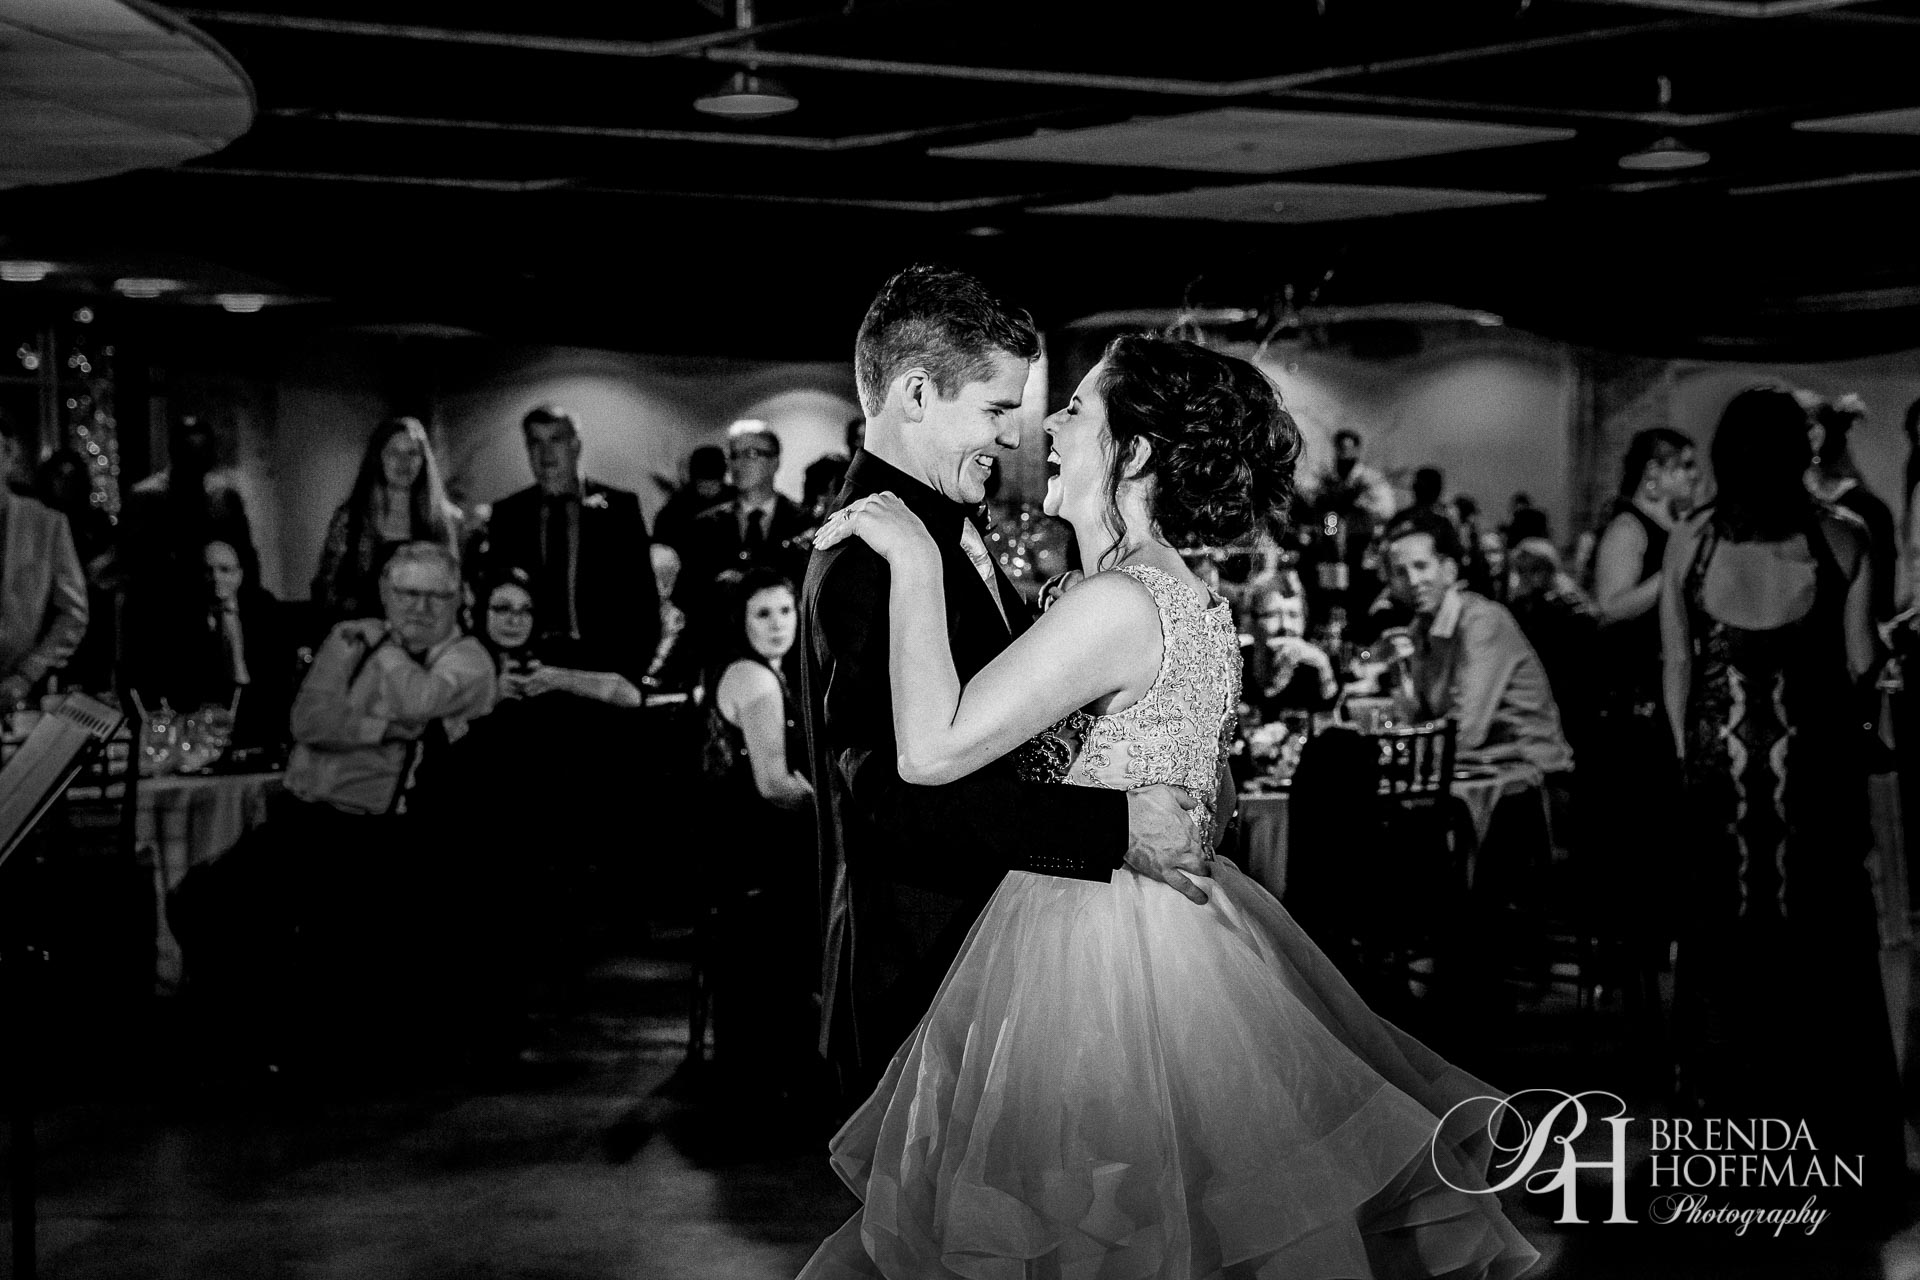 Wedding Photography Muskegon Mi: Muskegon MI Wedding - Brenda Hoffman